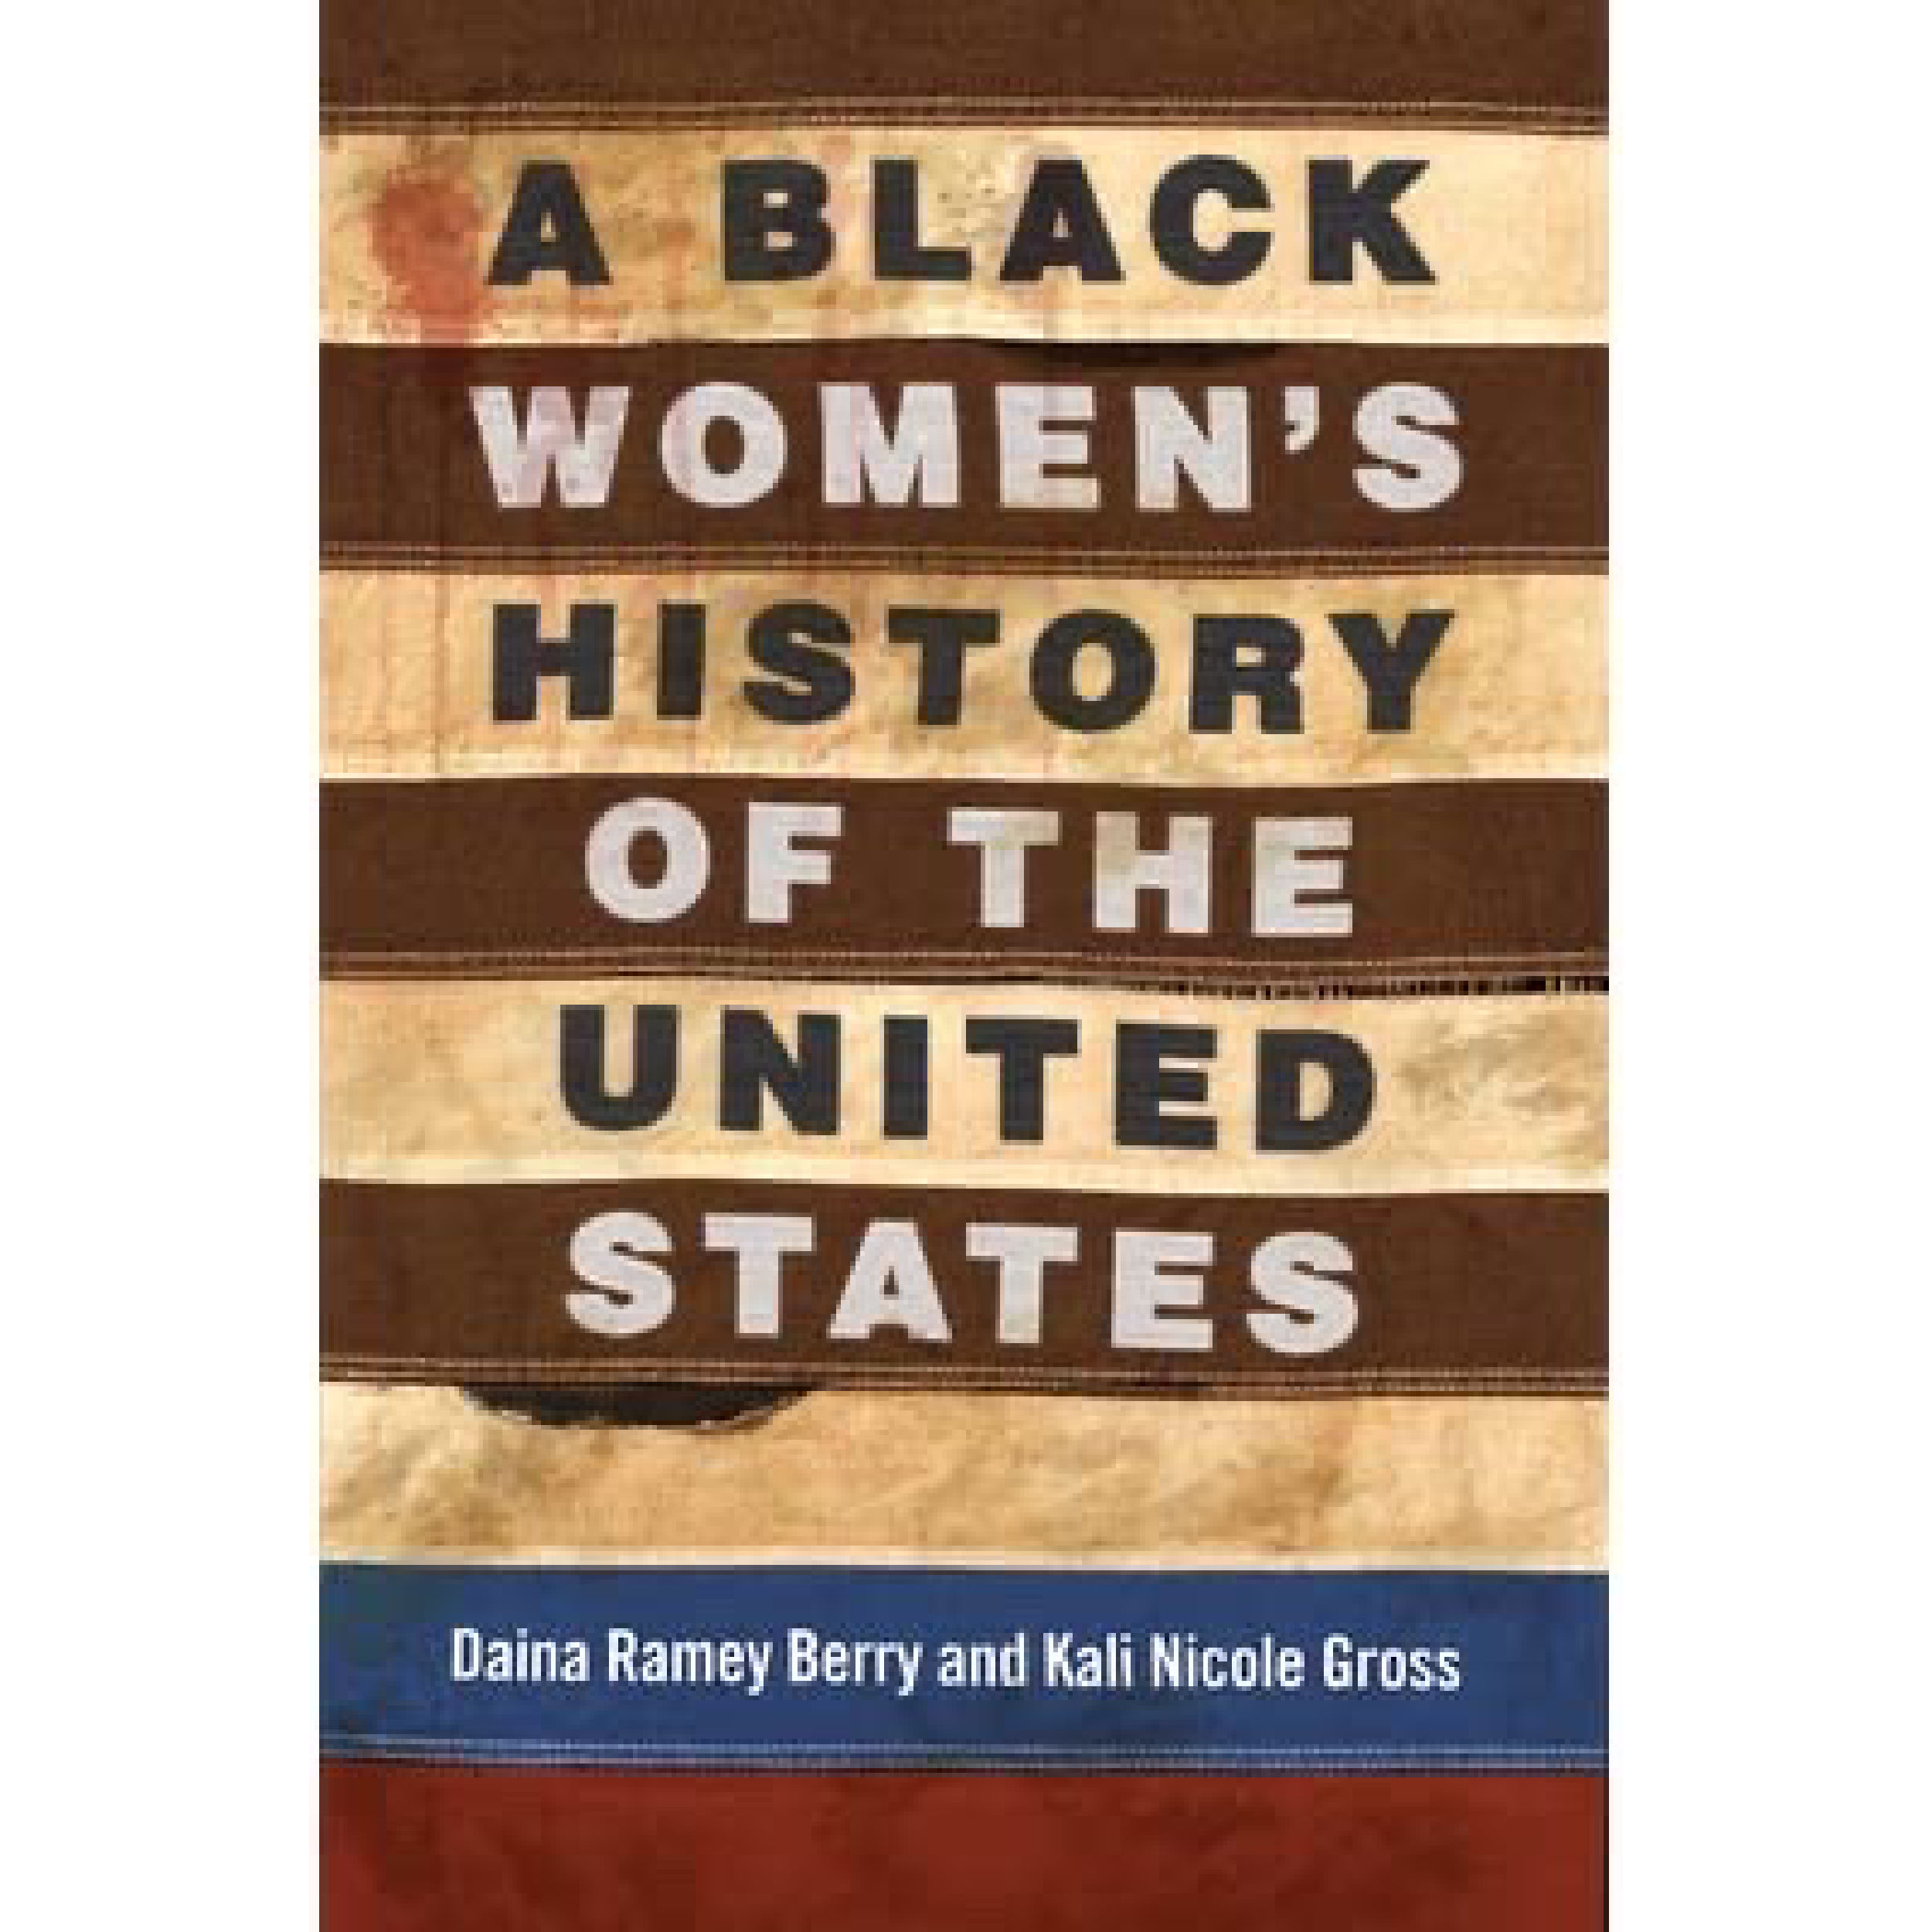 blackwomenshistory